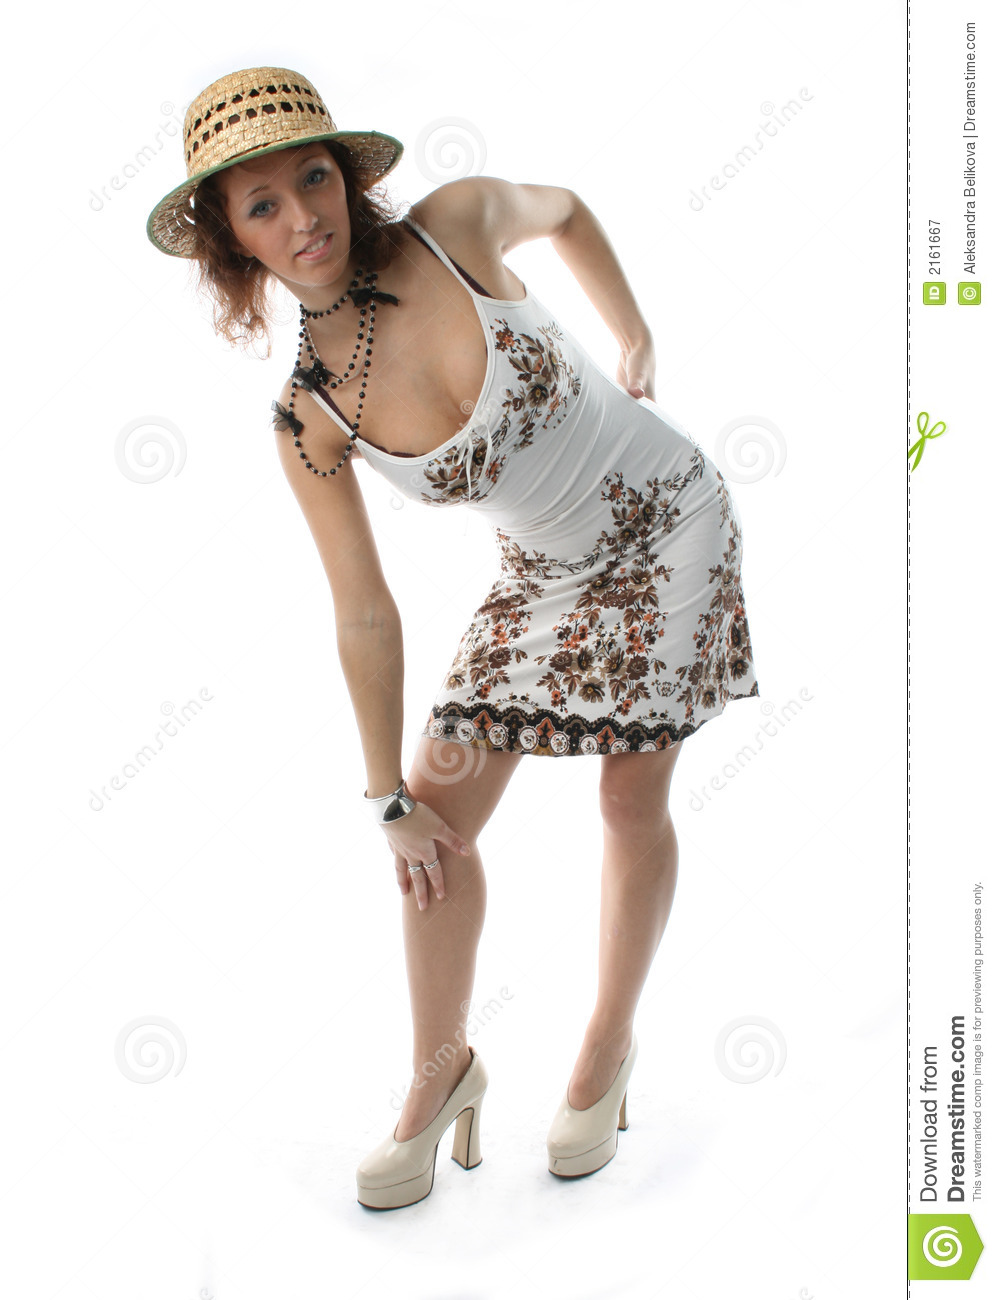 43caaf43eca4a The girl in a sundress and a straw hat on a white background